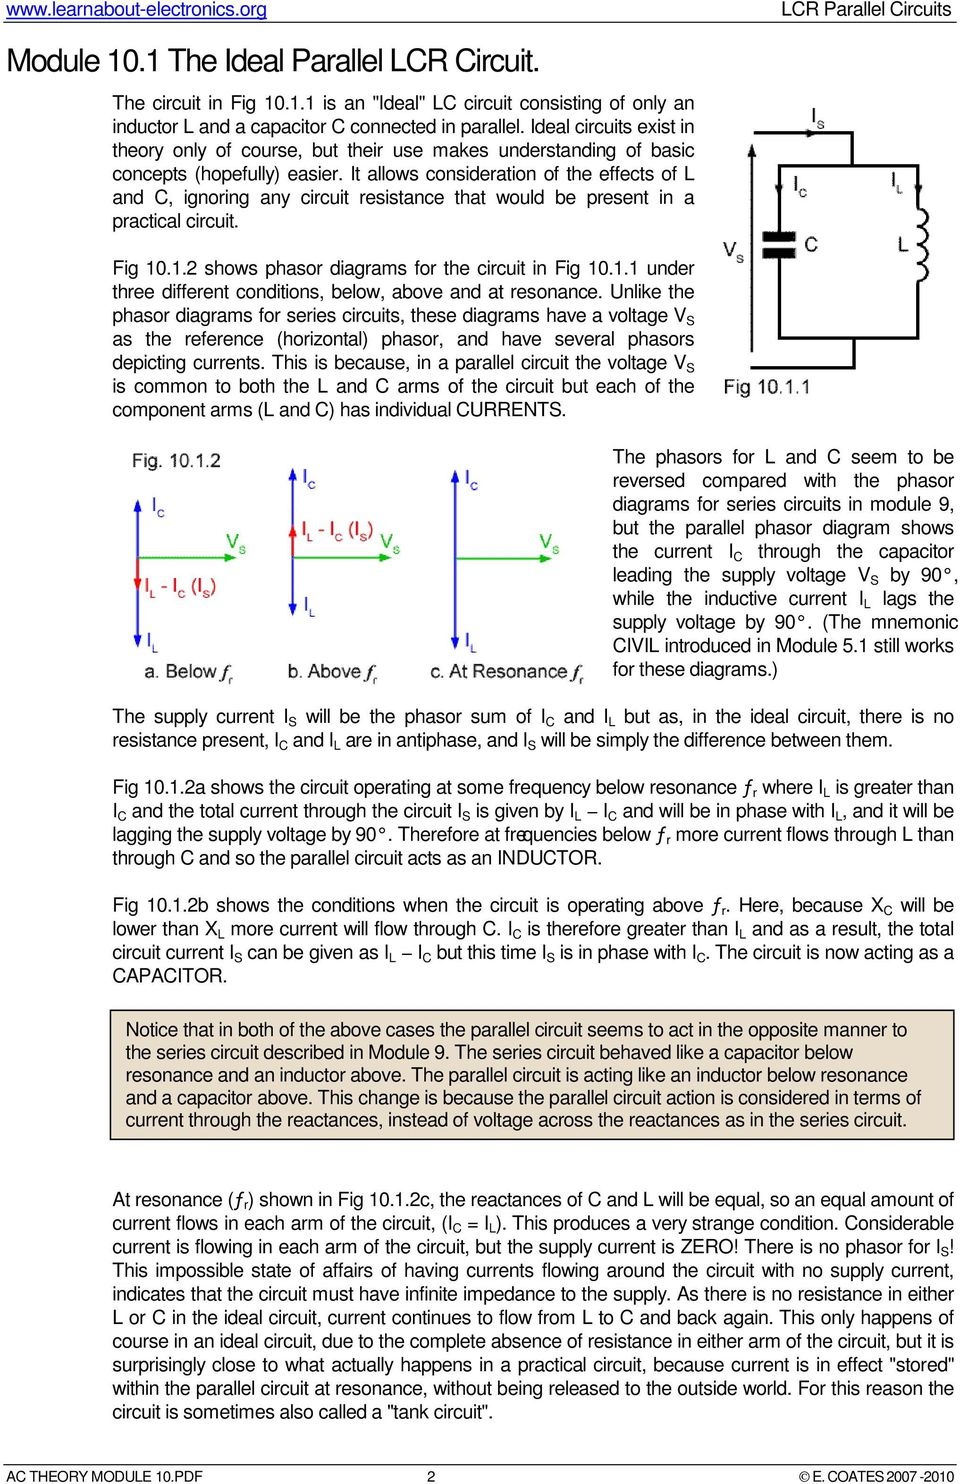 Lcr Parallel Circuits Pdf Ac Circuit Inductance And Capacitance In Series It Allows Consideration Of The Effects L C Ignoring Any Resistance That